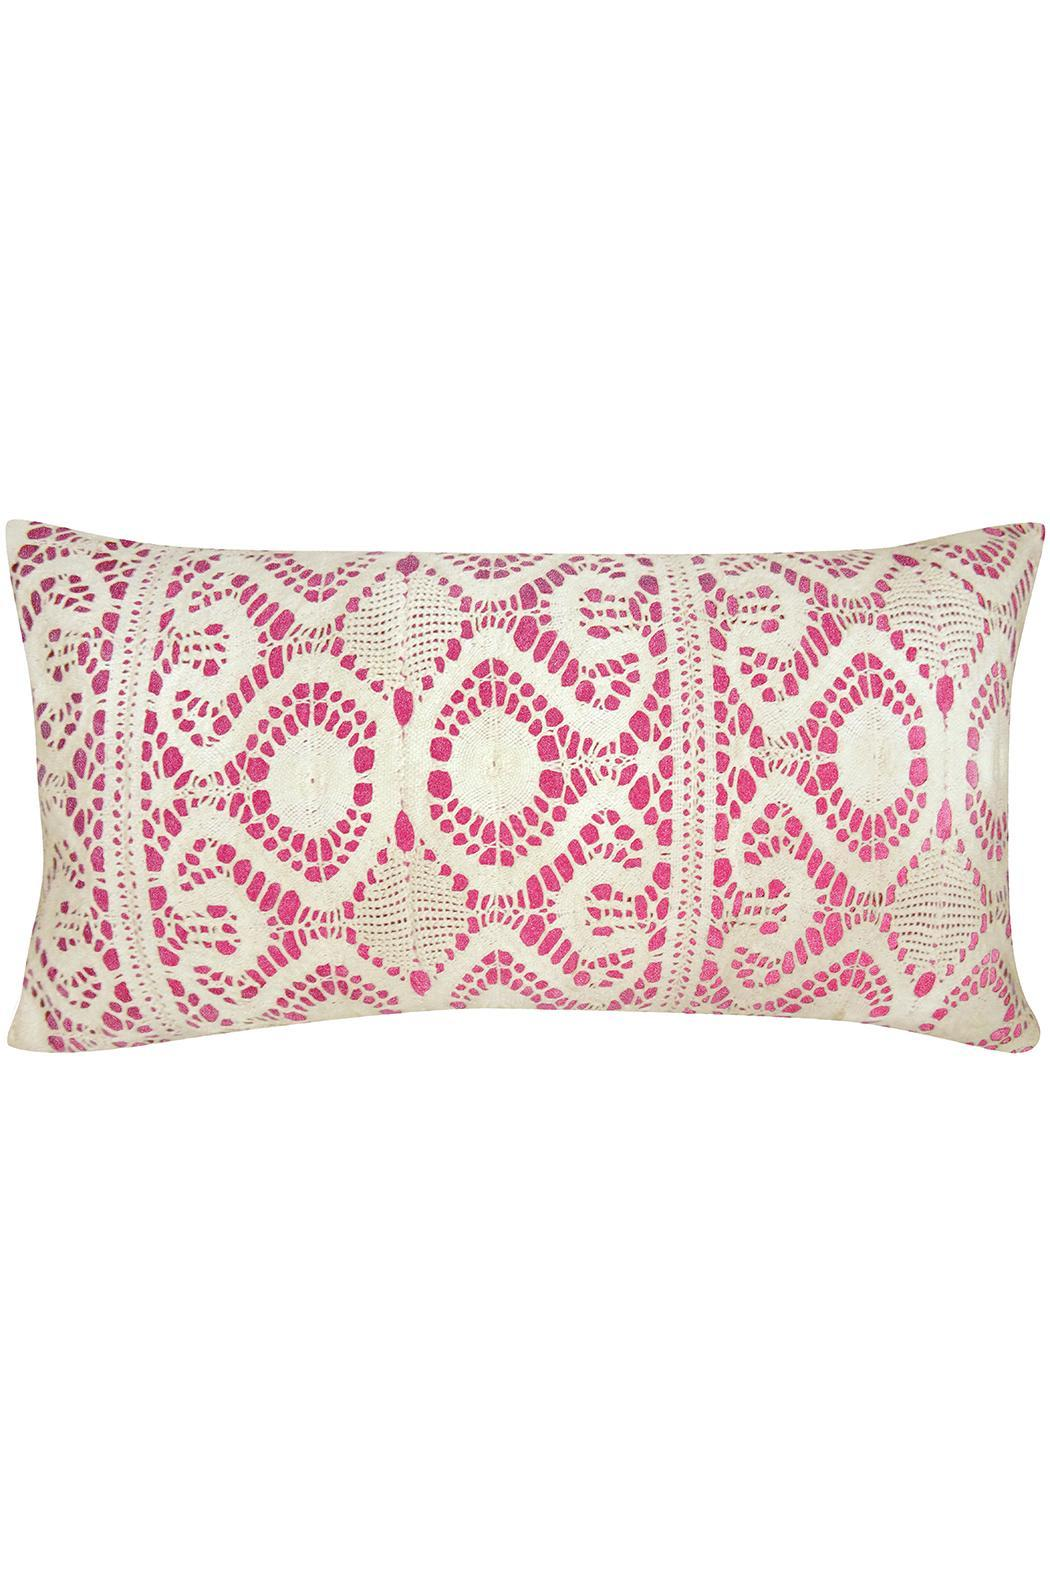 Villa home collection sumatra pillow from atlanta by for Villa home collection pillows